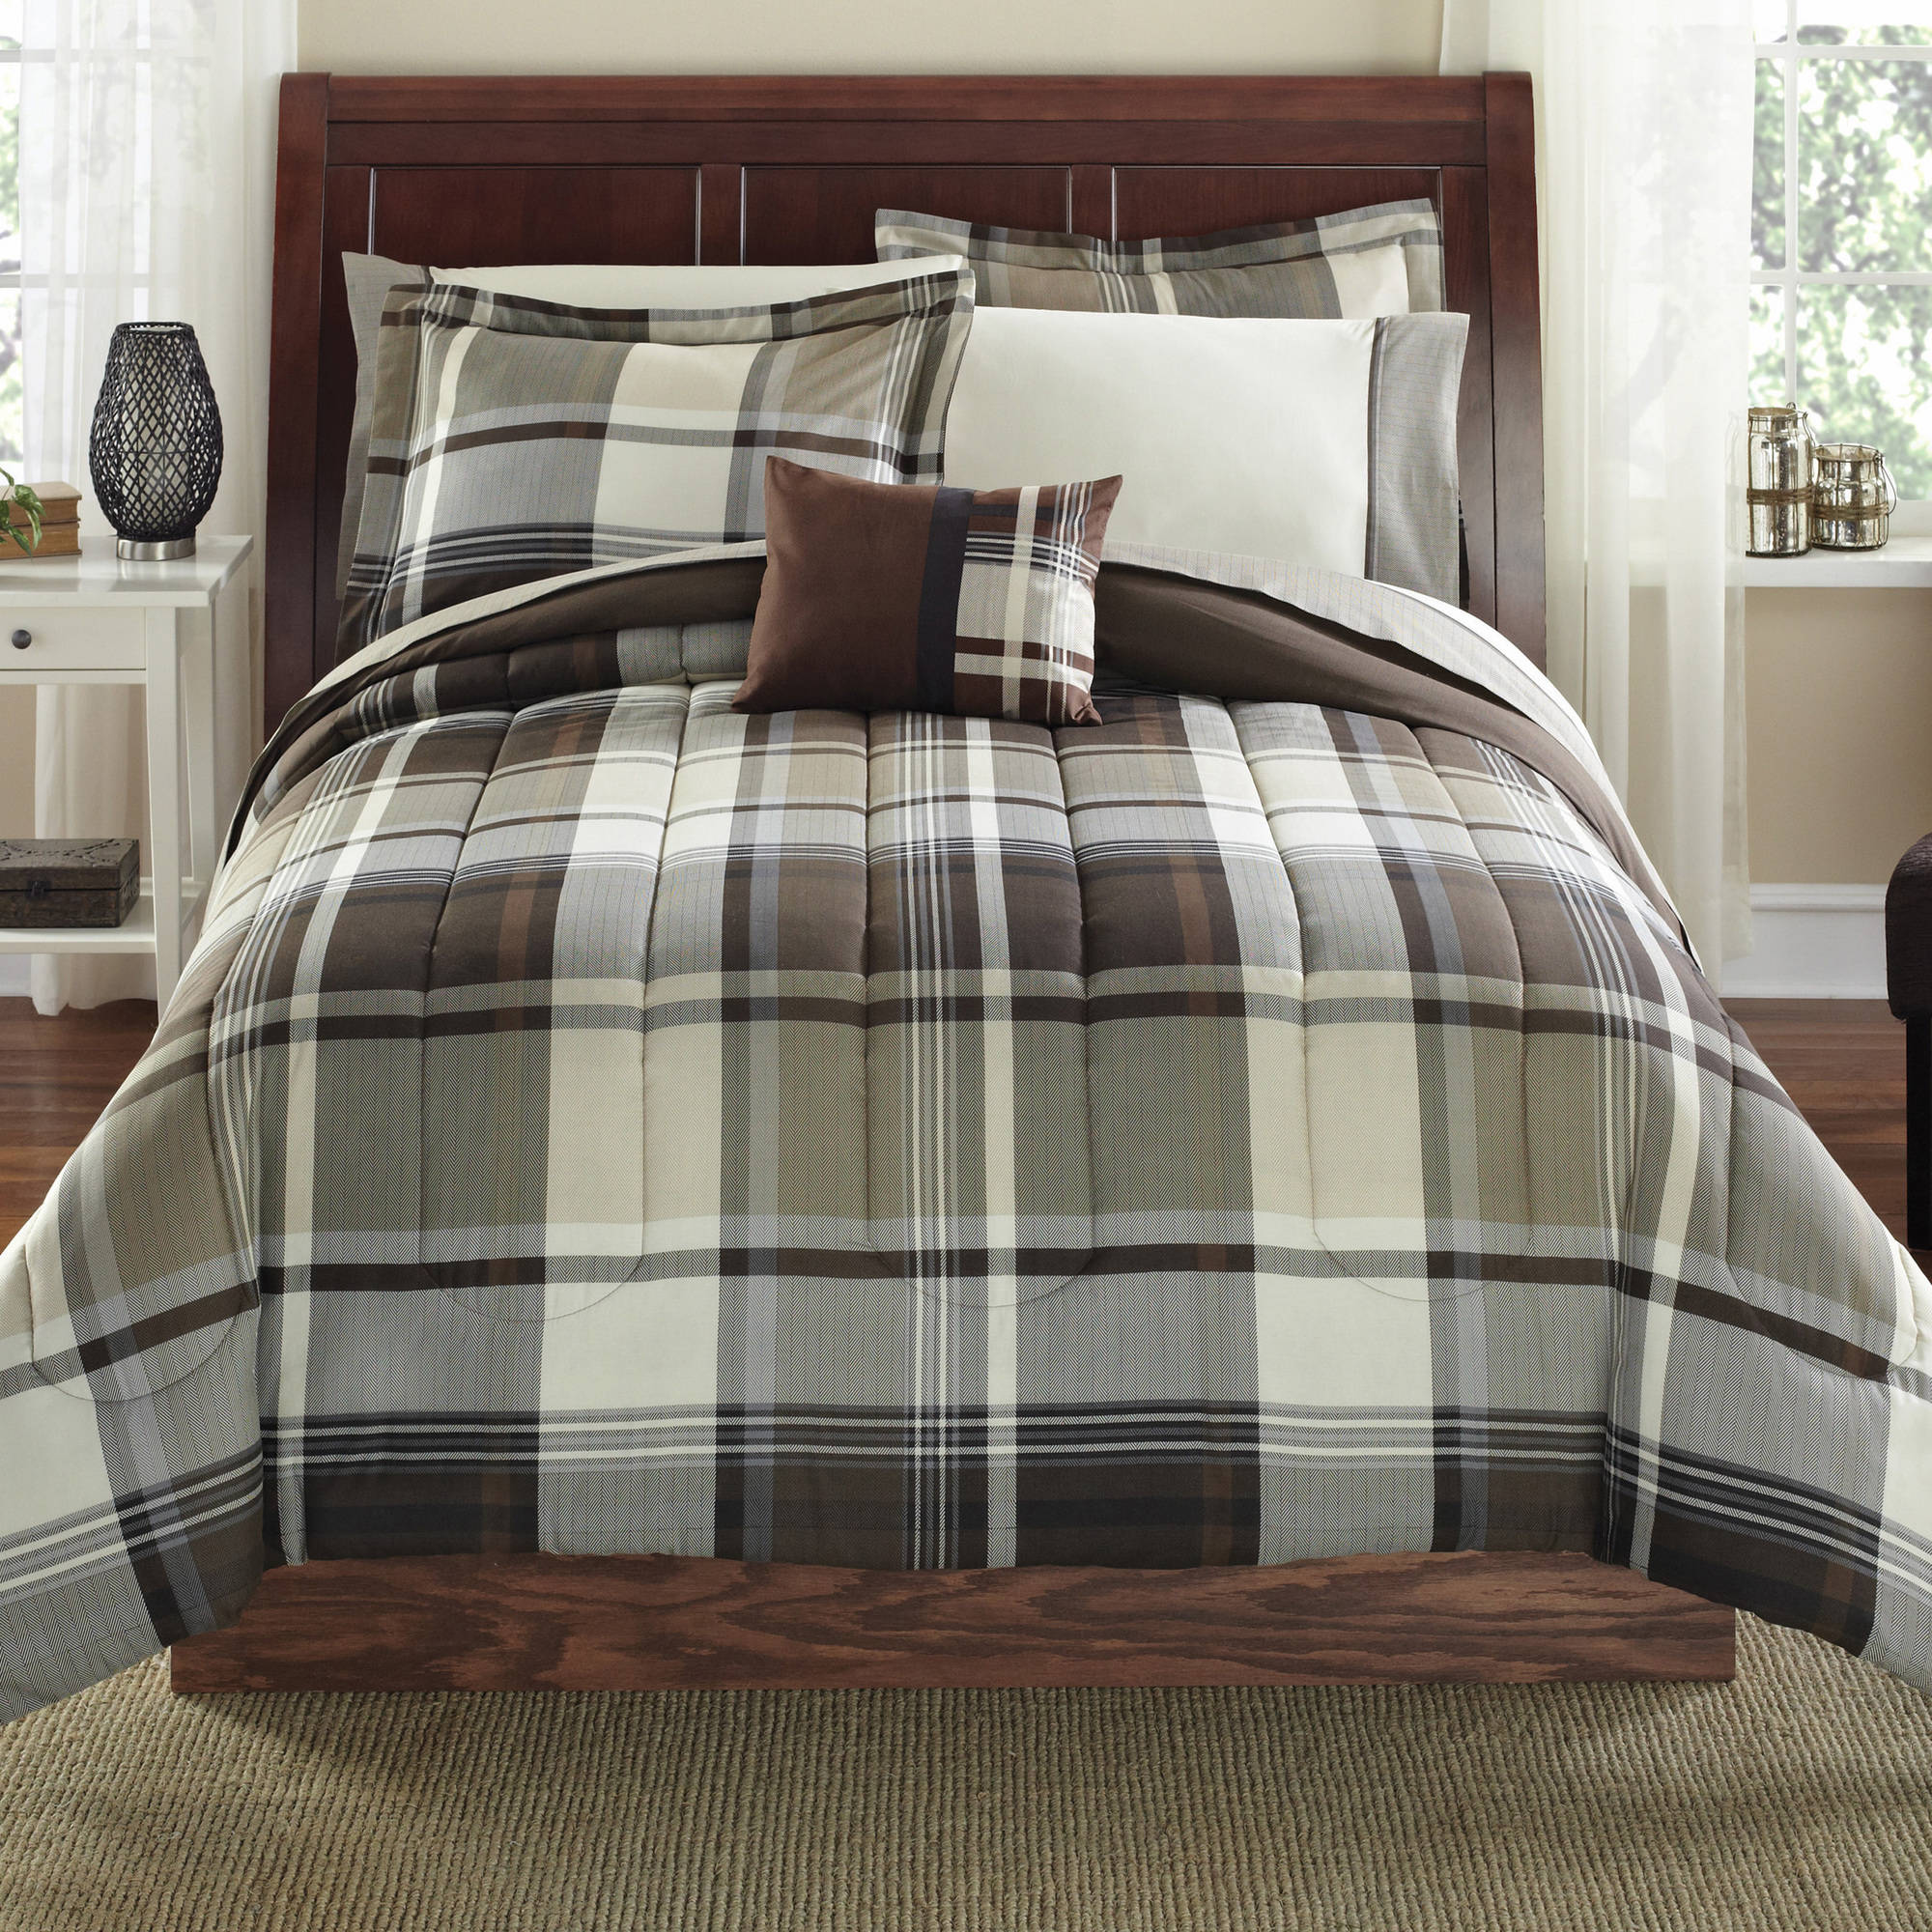 Mainstays 8 Piece Bed-in-a-Bag Bedding Comforter Set, Brown Plaid, Multiple Sizes